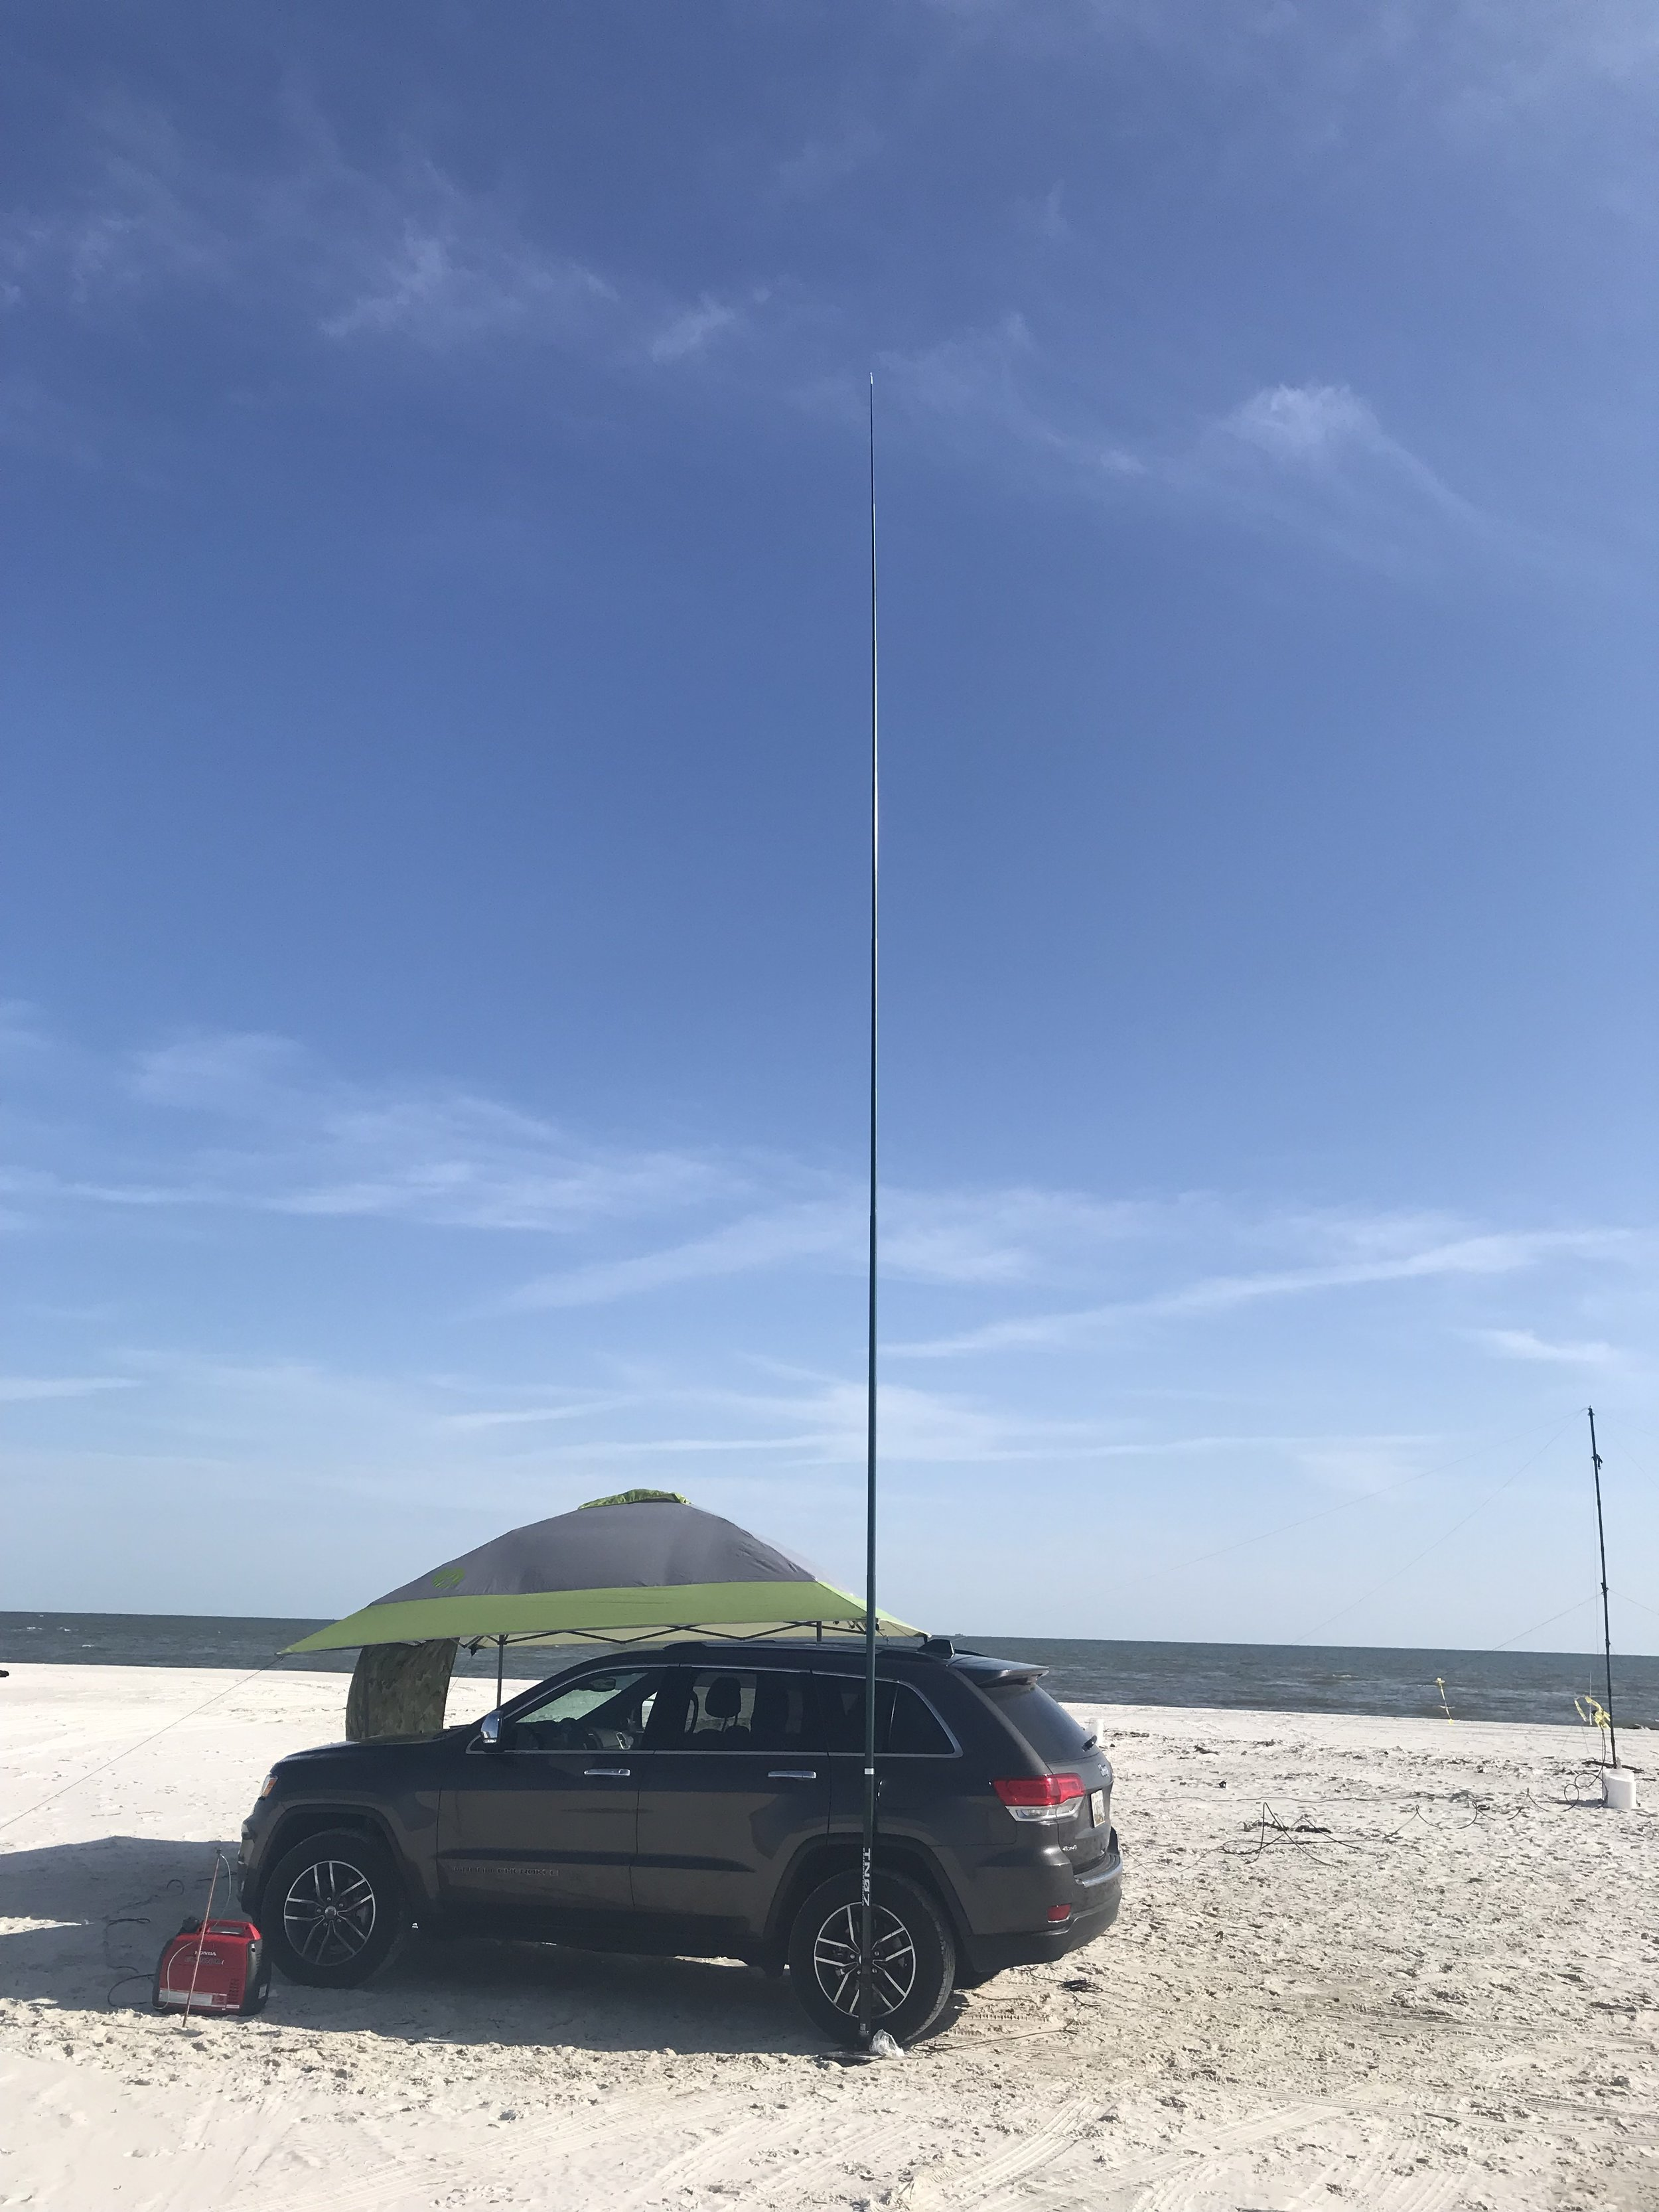 SFP used in portable beach ops